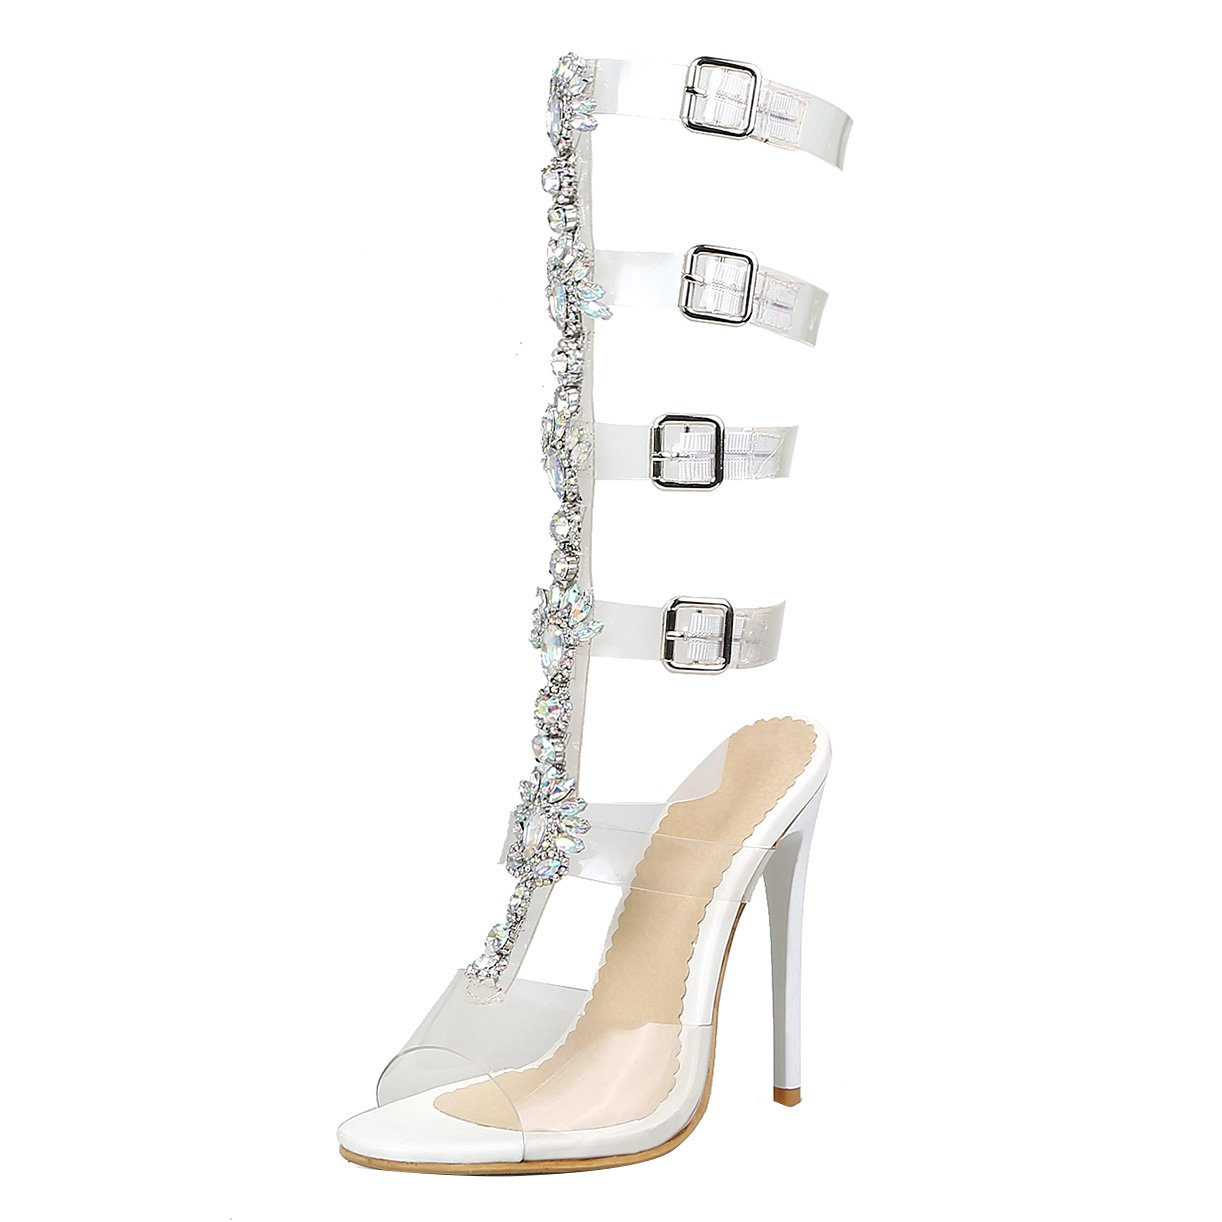 JYschuhe Stiletto High Heels Römersandalen Frauen Hoch Sommer Transparent Sandaletten mit Strass and Schnalle Fashion Schuhe Damen